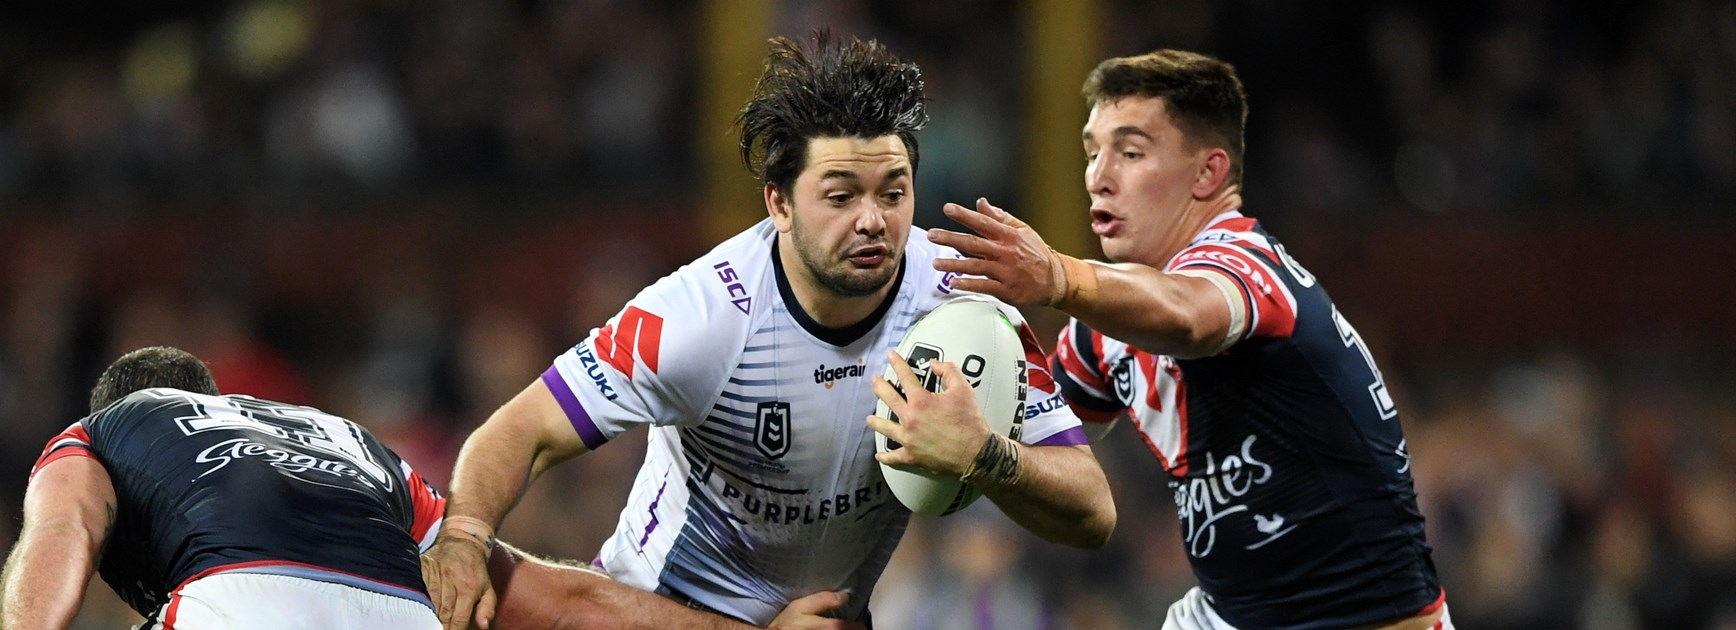 Brandon Smith on future at Melbourne Storm